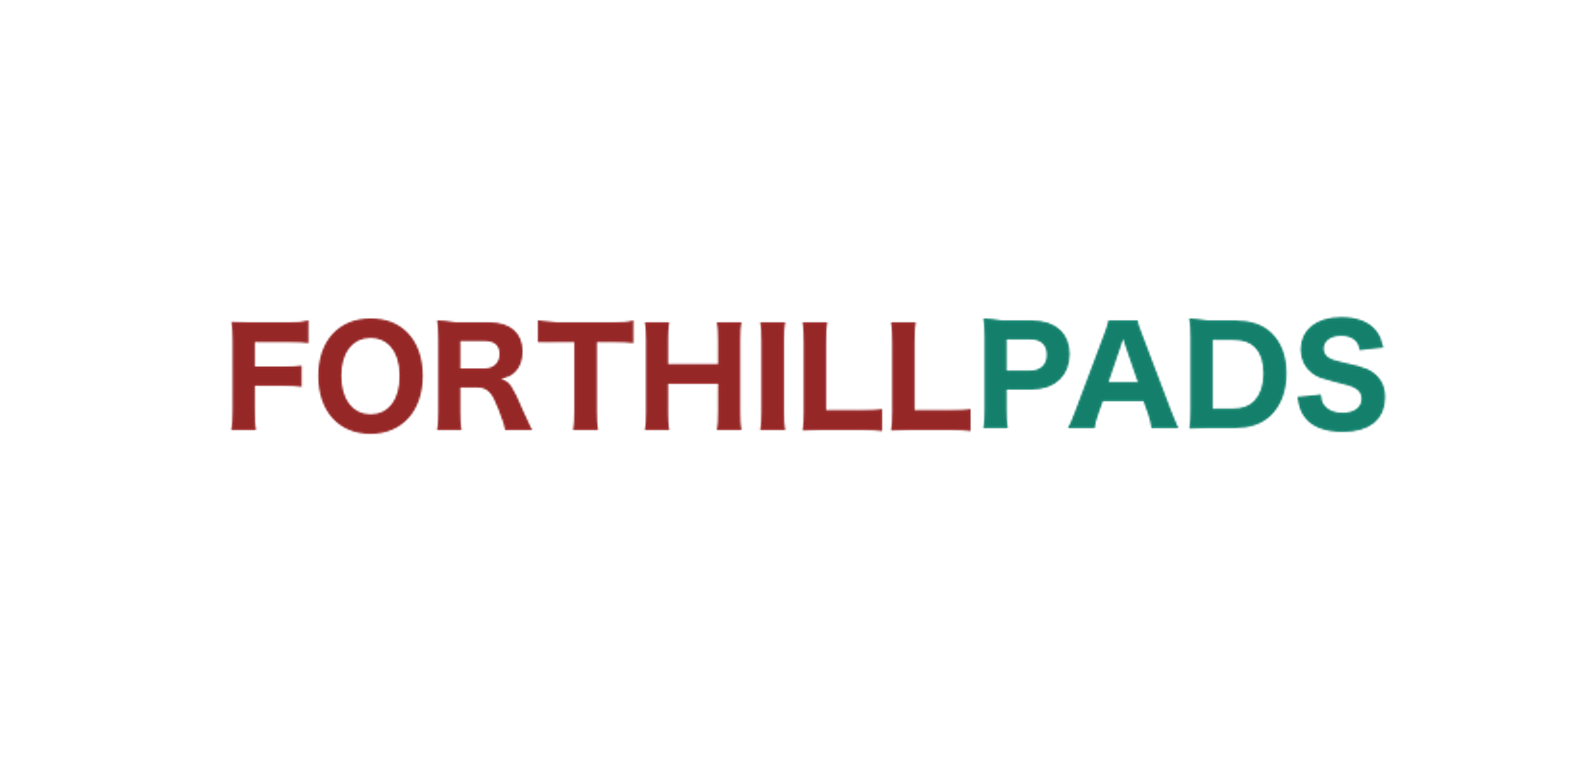 Forthill Pads